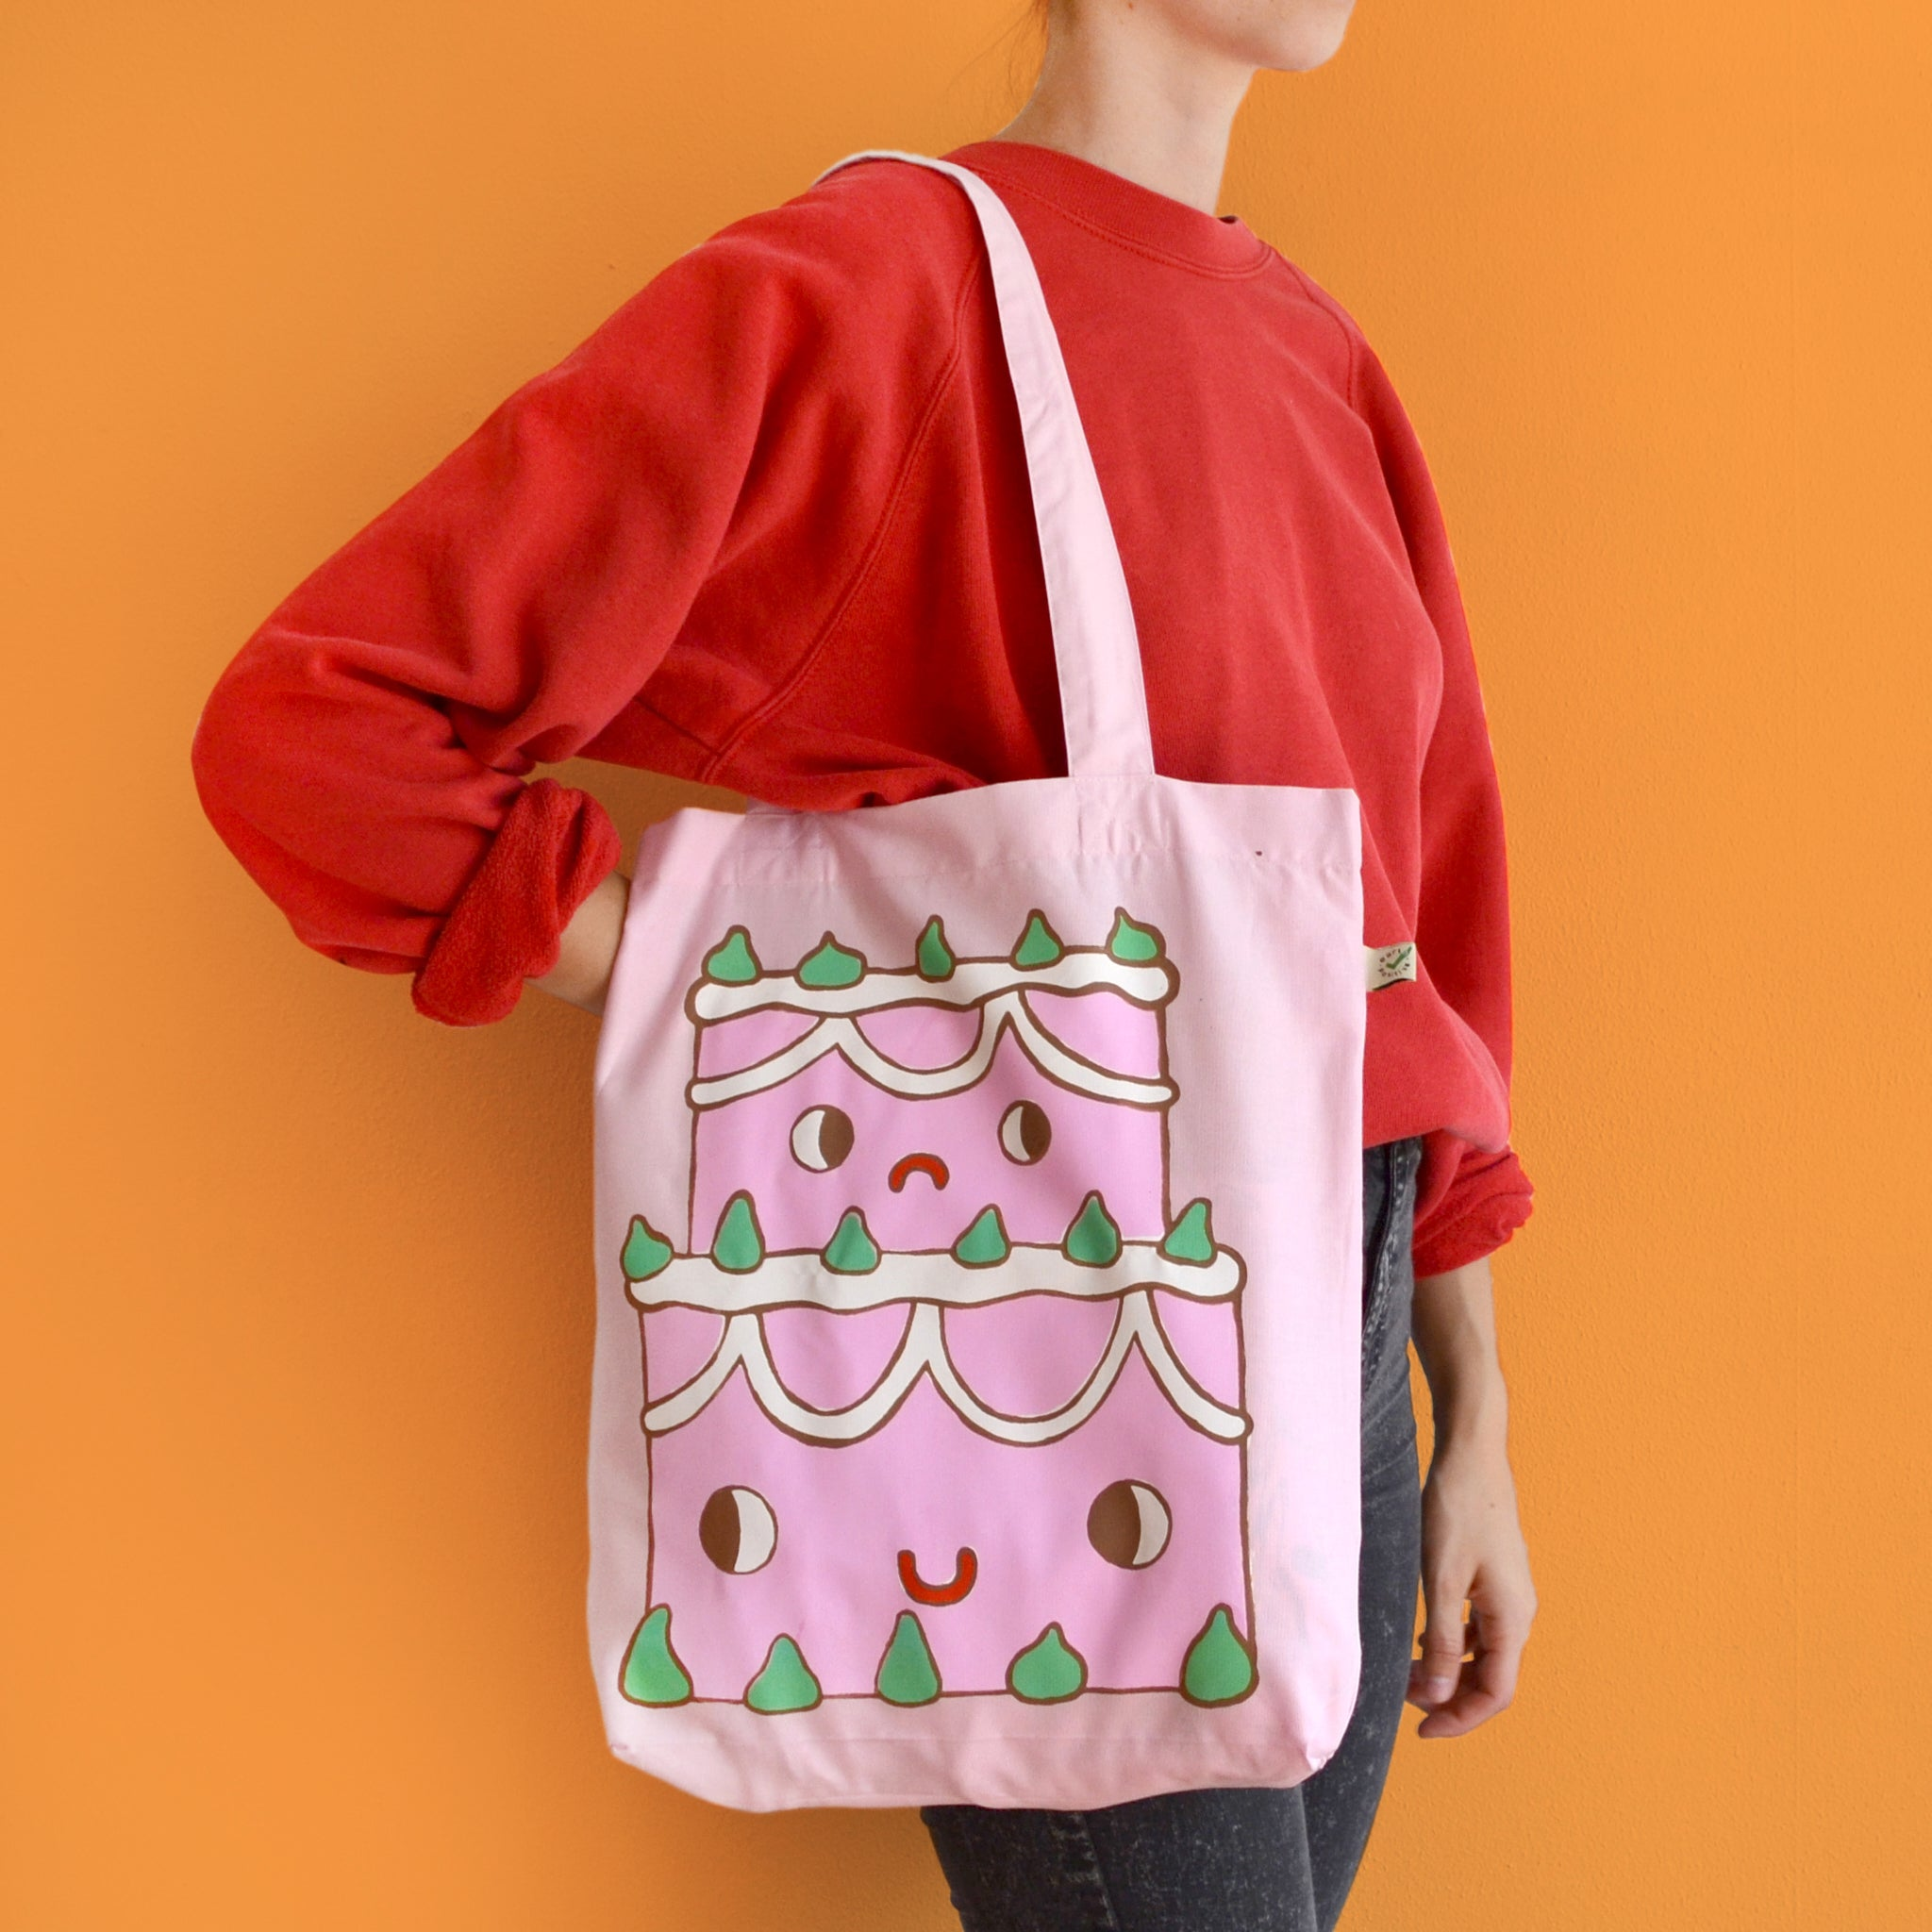 IMPERFECT Hand Printed STRAWBERRY CAKE Tote Bag (100% Organic Cotton)